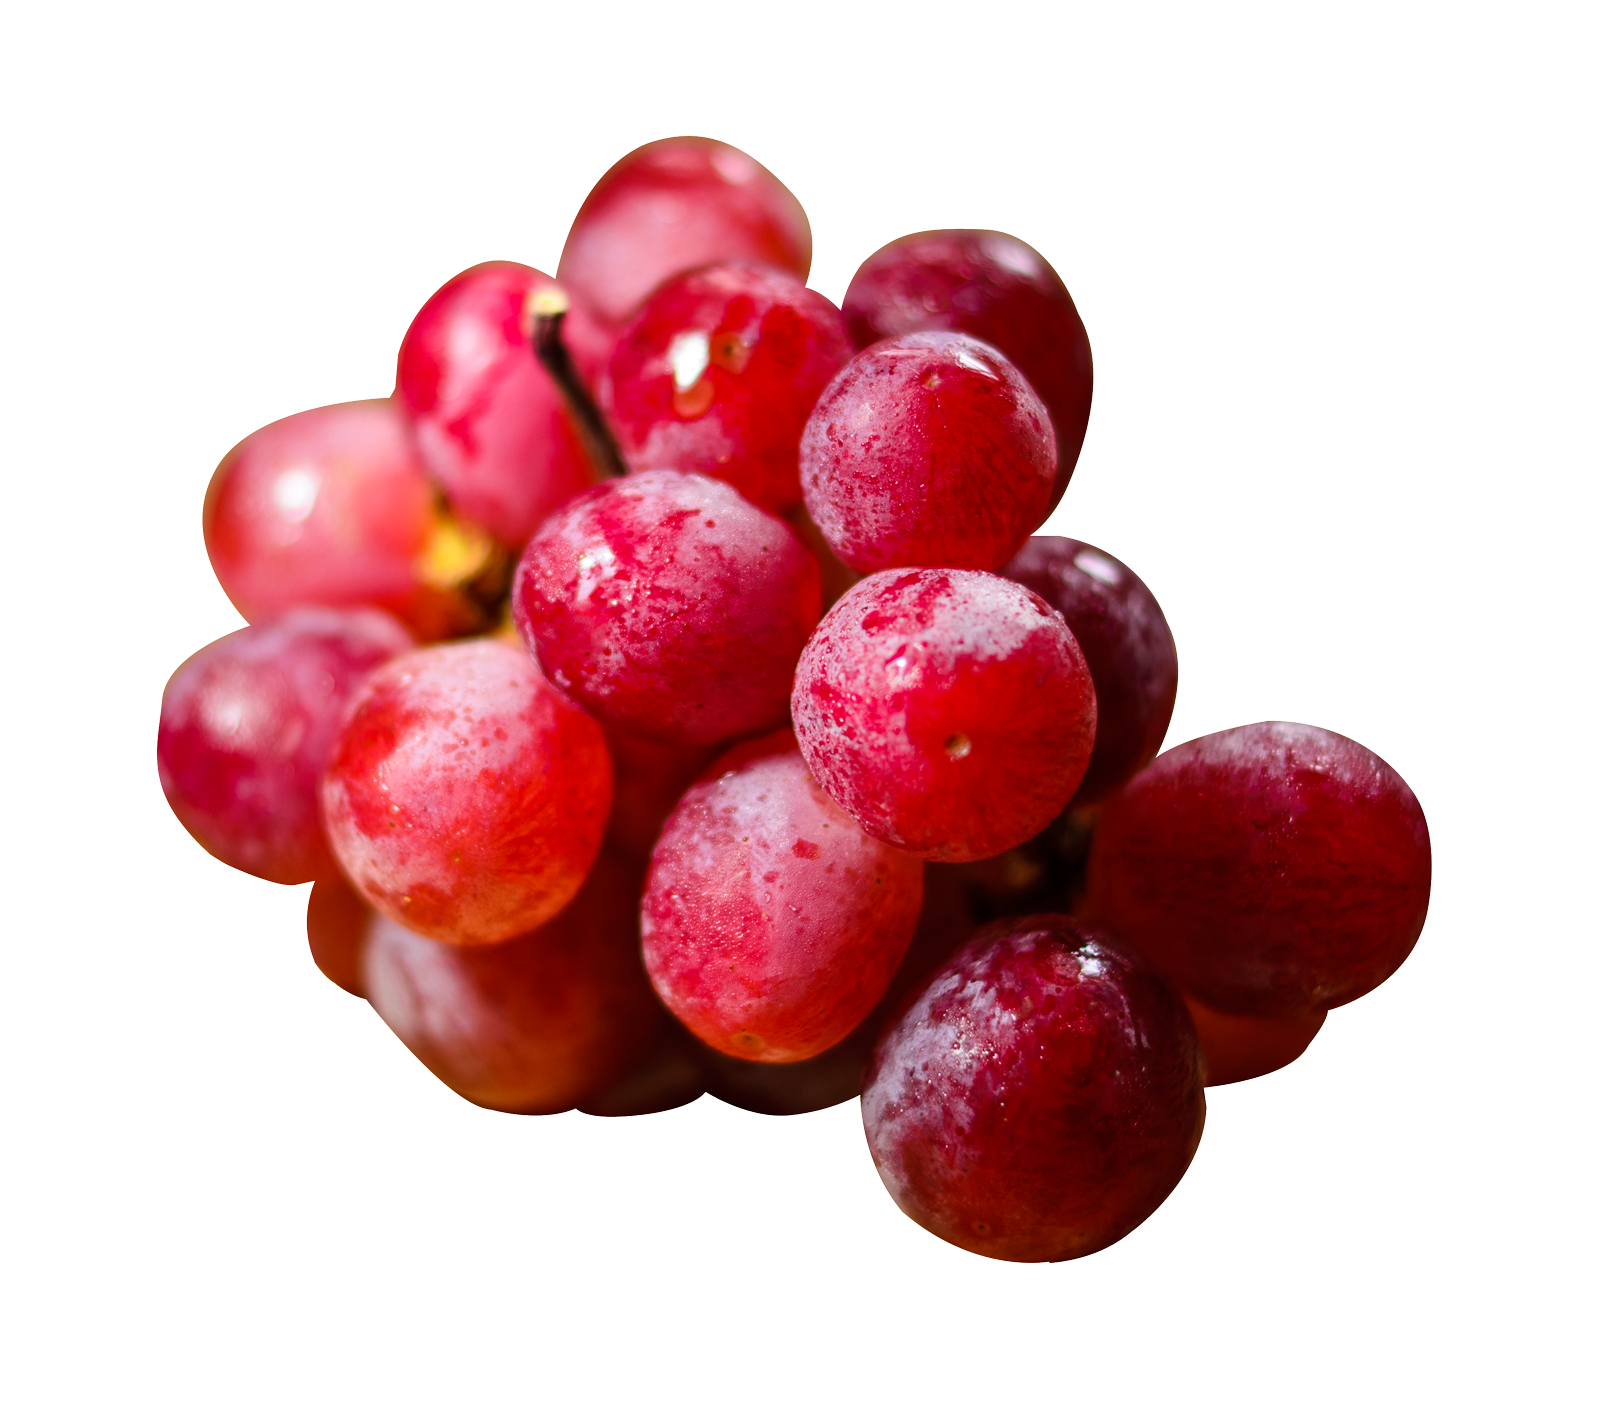 red grapes png image pngpix #16989